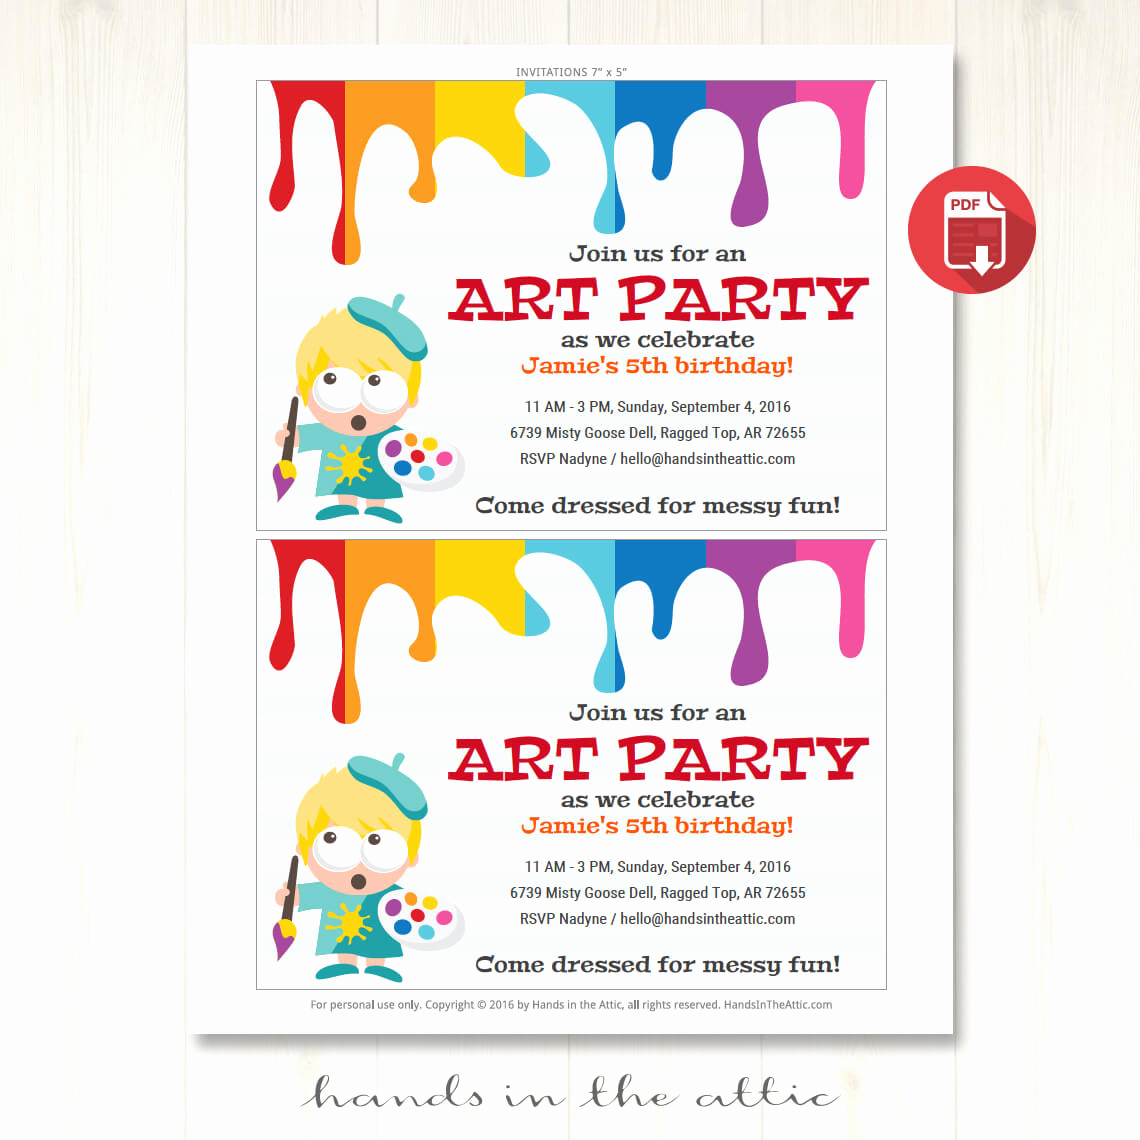 Free Art Party Invitation Templates Awesome Art Party Invitation Printable Template